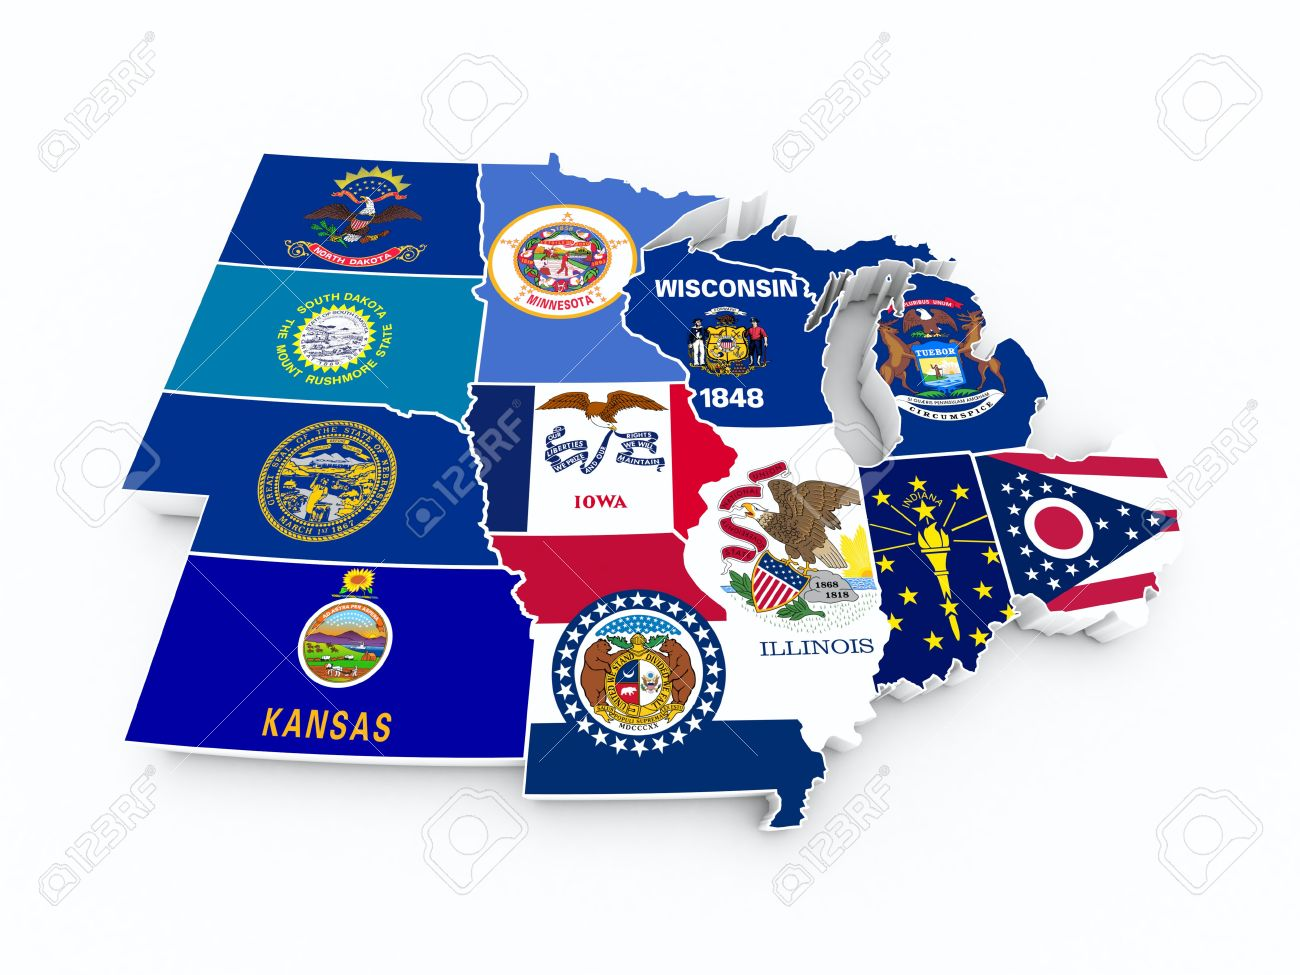 Map Usa Midwest Region Stock Photo Picture And Royalty Free Image - Midwest region map